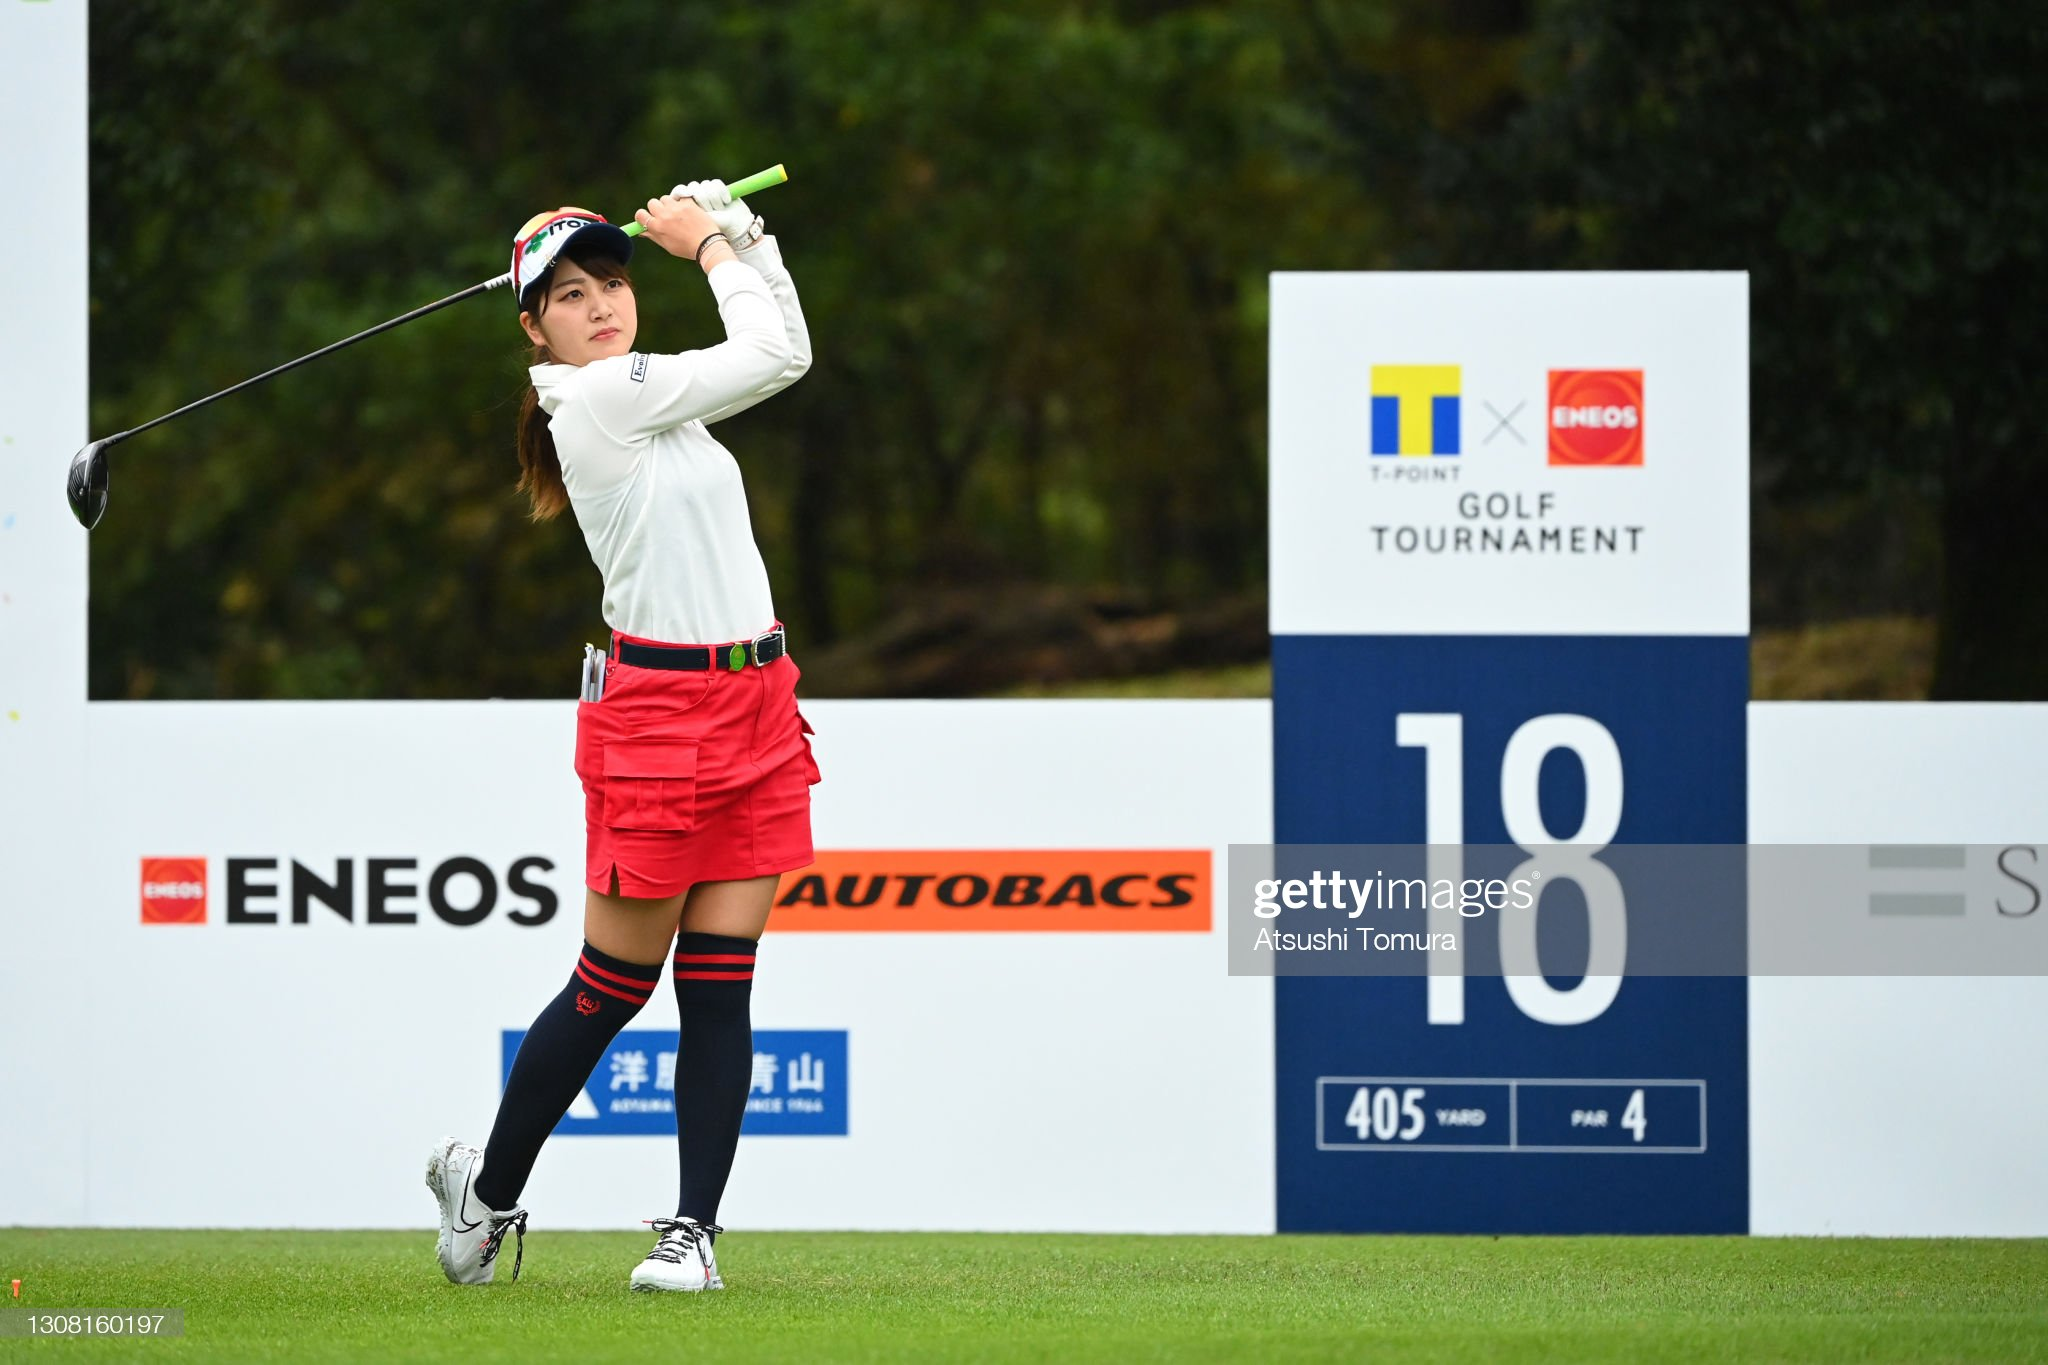 https://media.gettyimages.com/photos/hikari-tanabe-of-japan-hits-her-tee-shot-on-the-18th-hole-during-the-picture-id1308160197?s=2048x2048